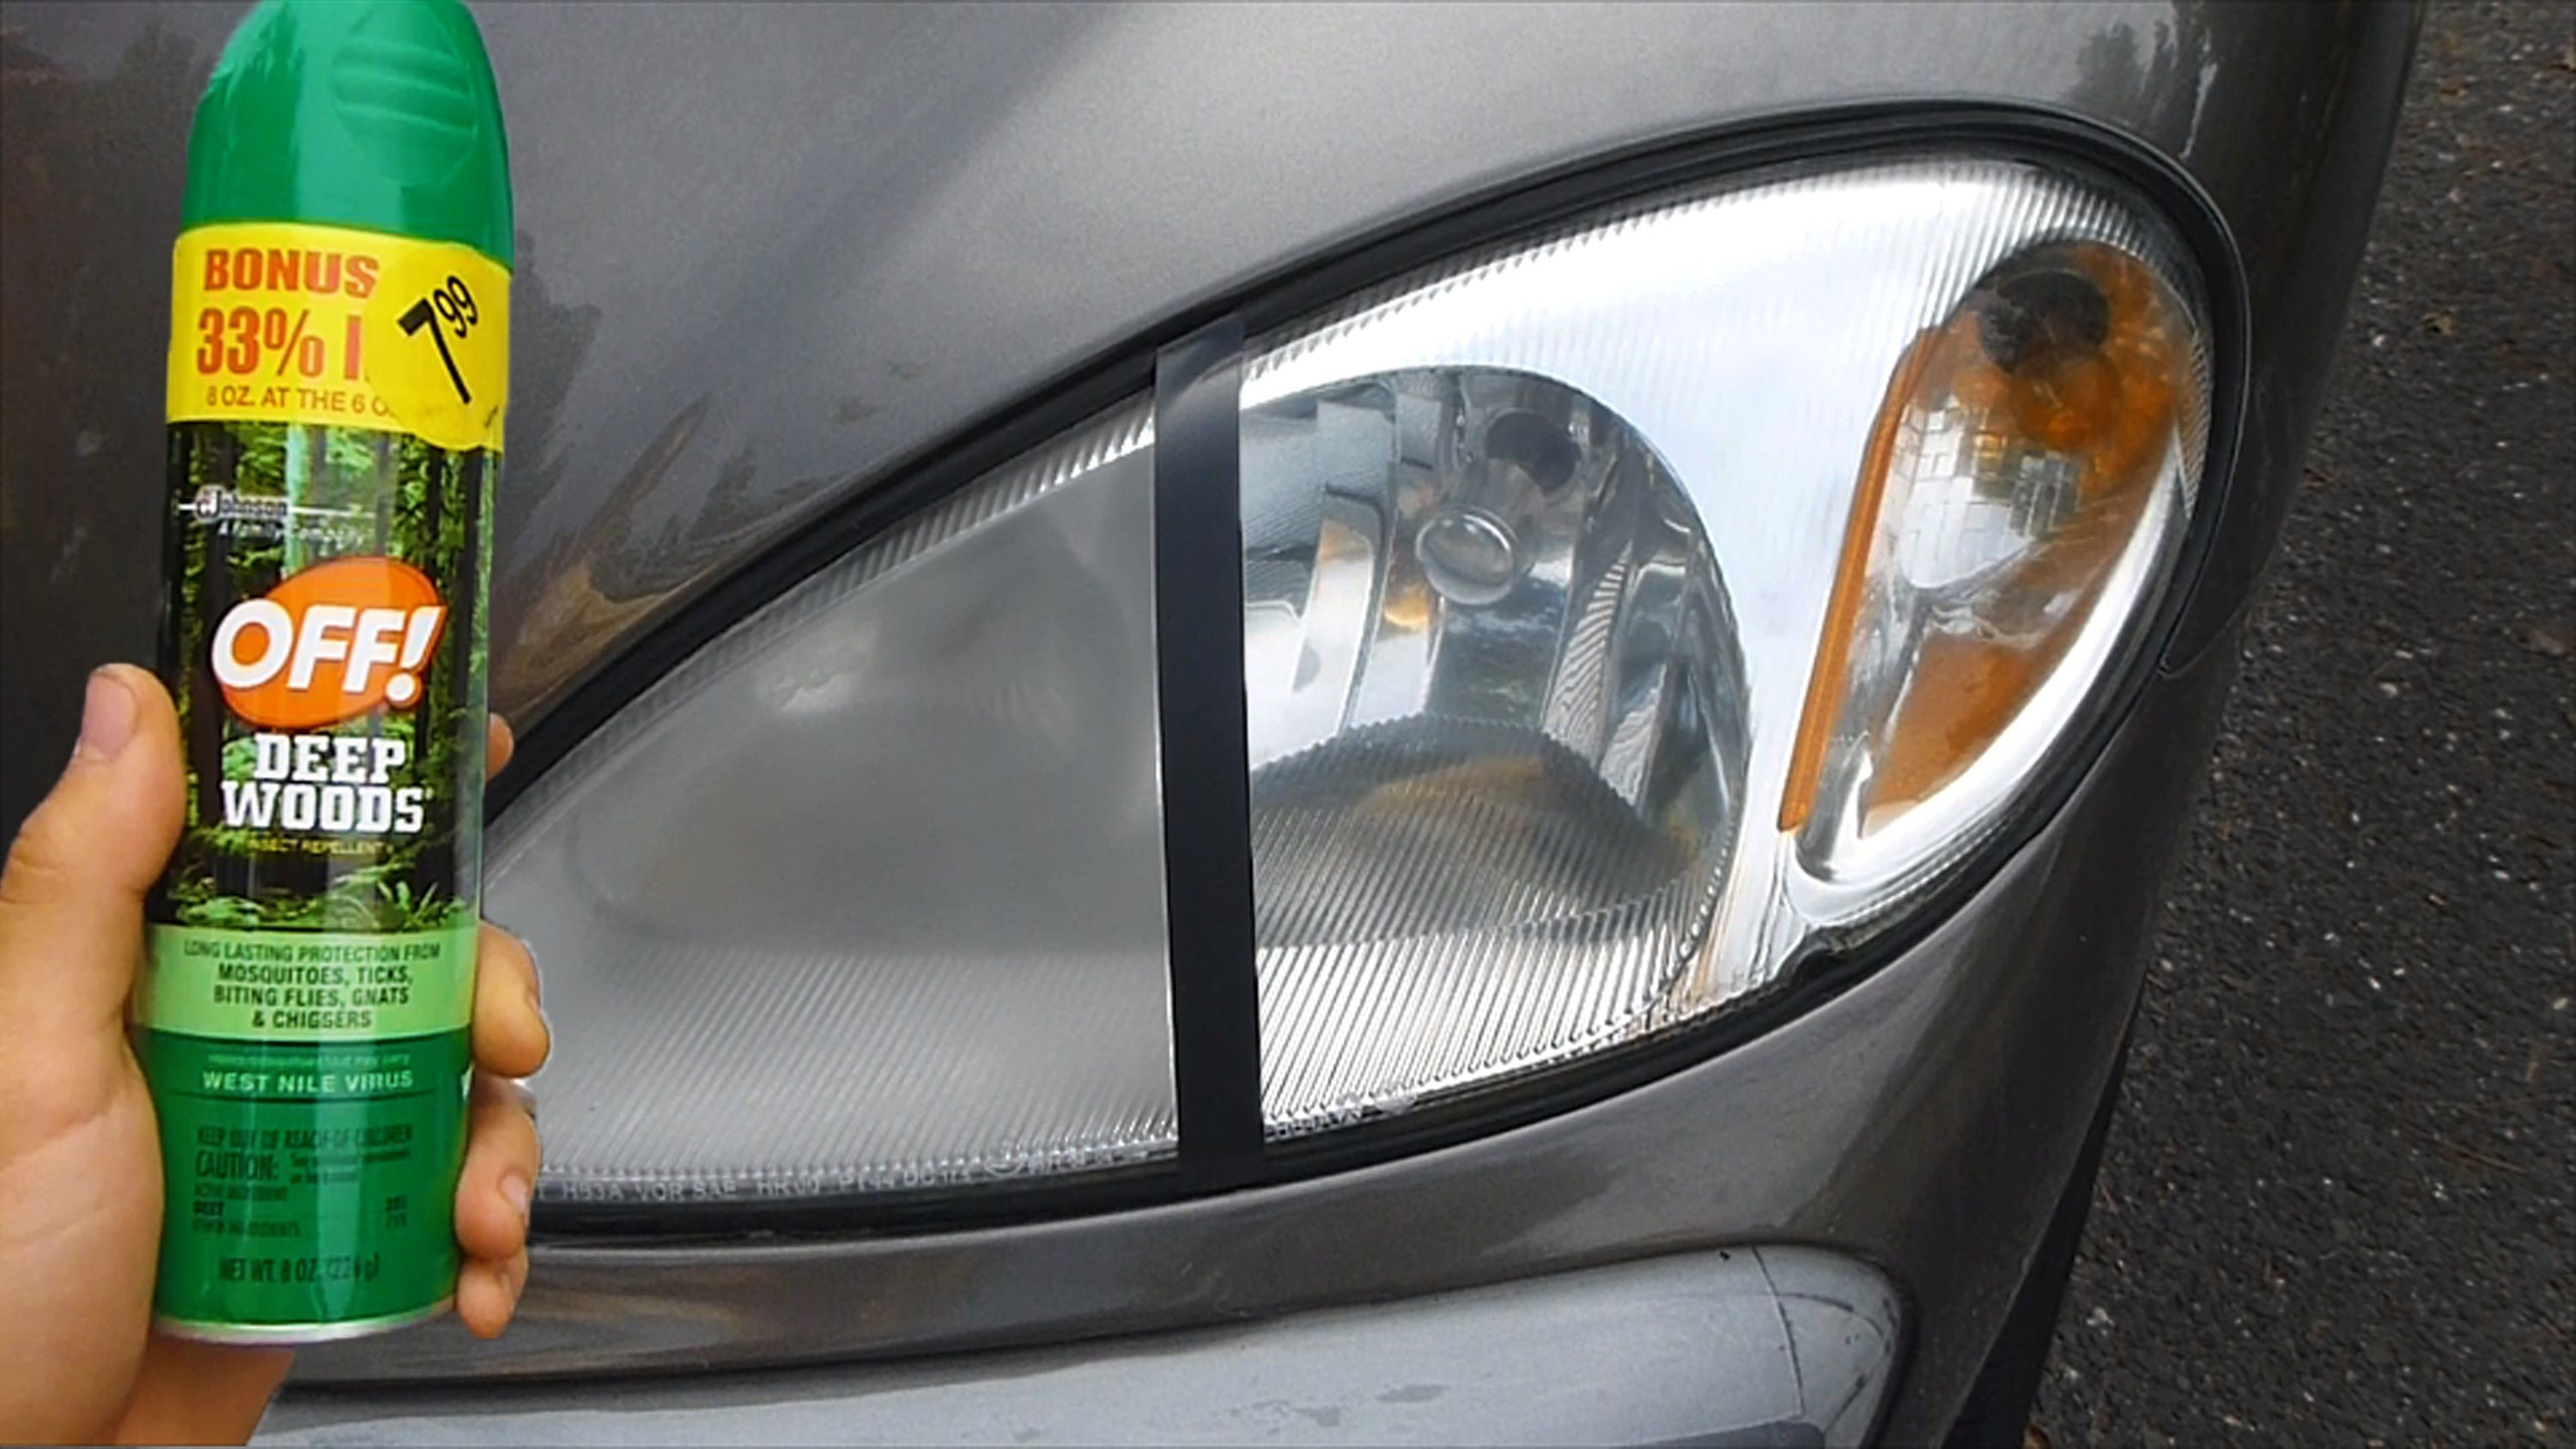 Bug Spray Headlight Restoration This Is A Video To Show You How Bug